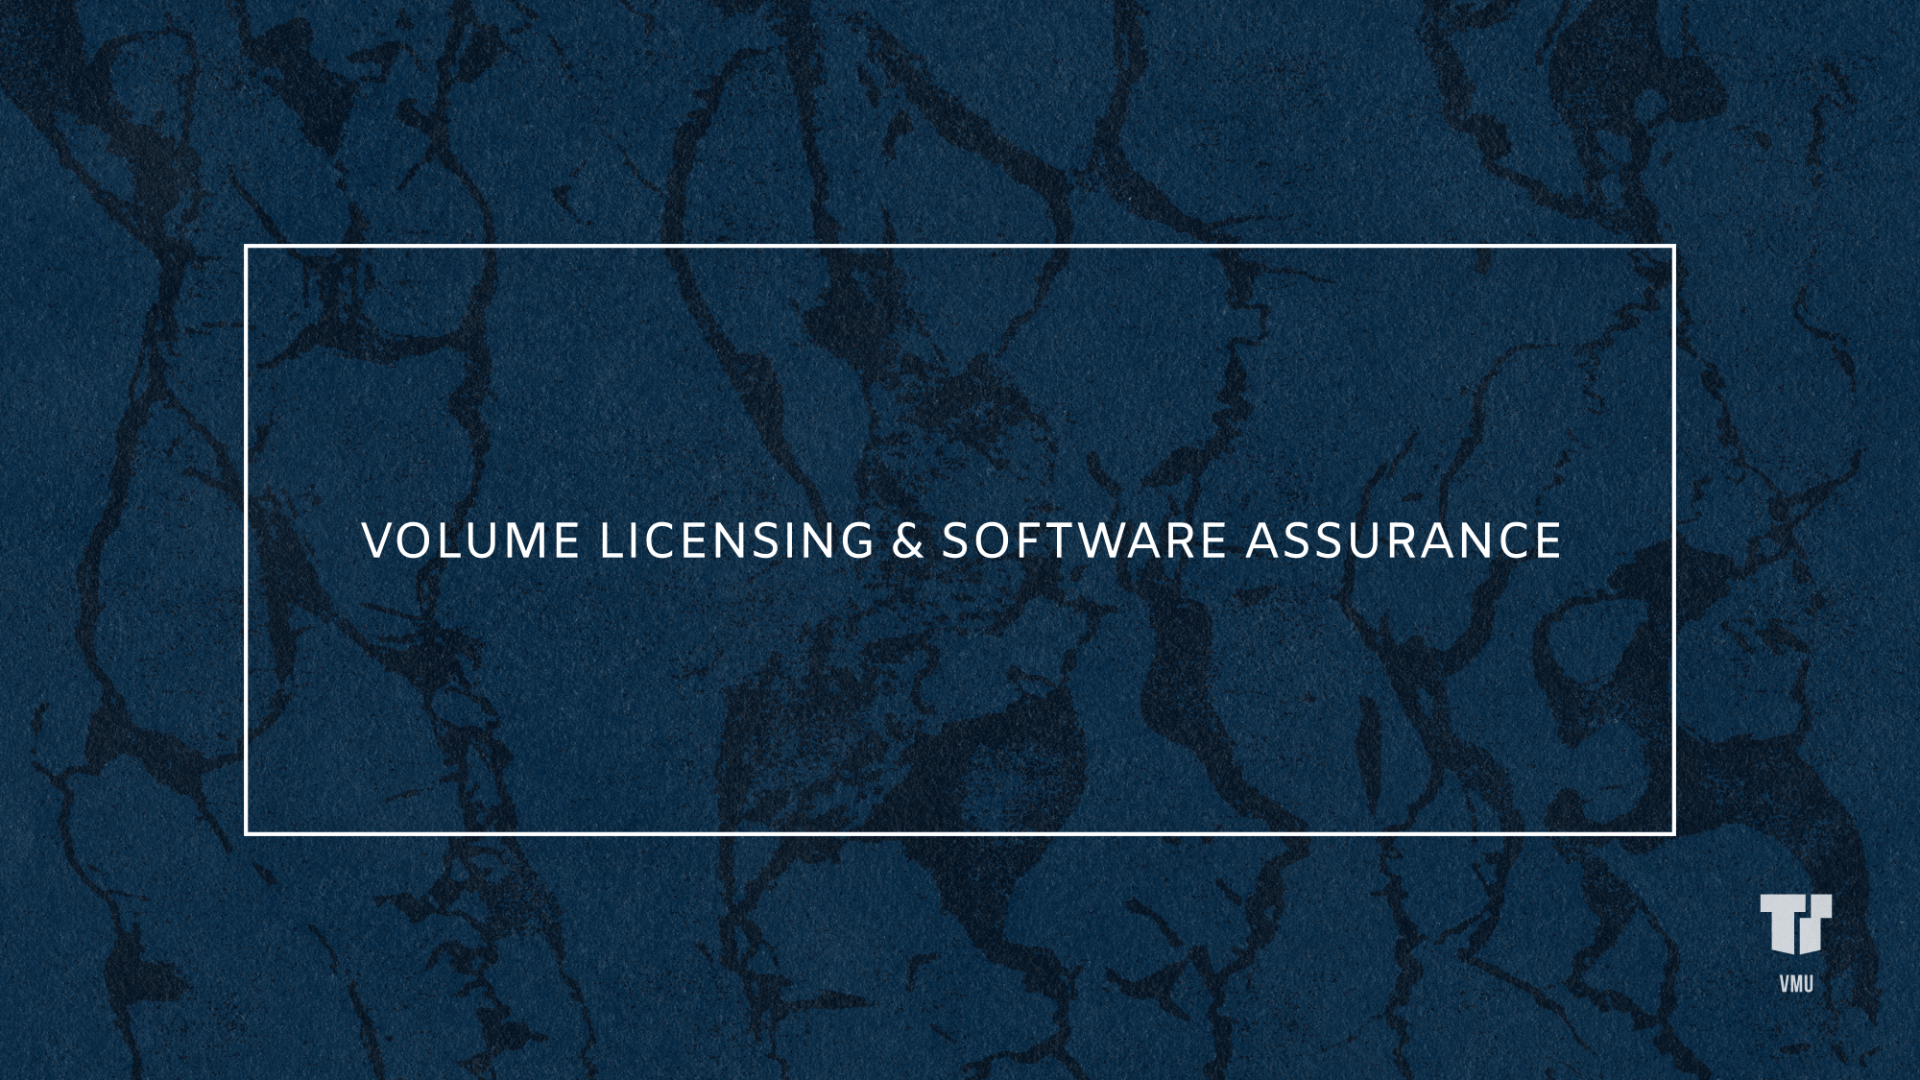 Volume Licensing & Software Assurance cover image